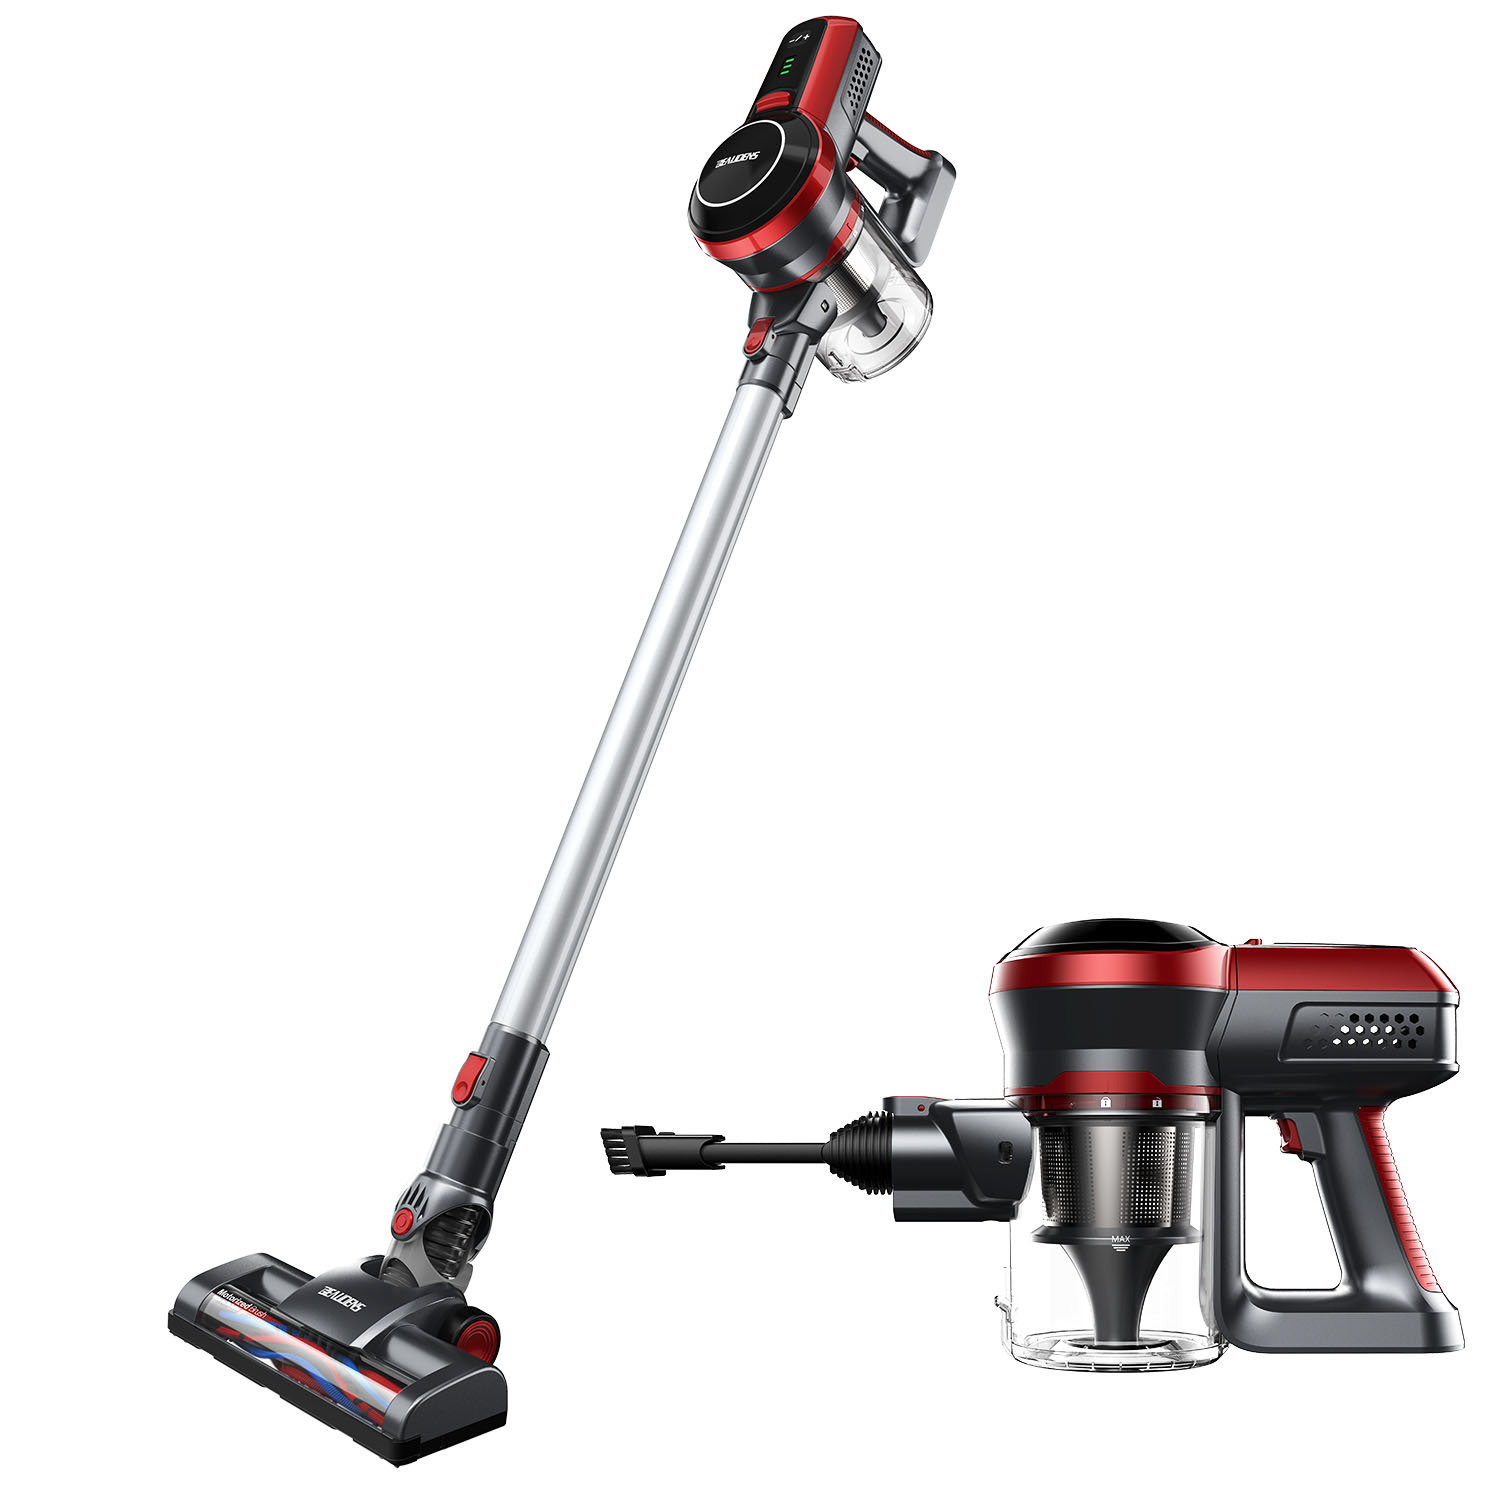 BEAUDENS 2-in-1 Cordless Vacuum Cleaner on clearance, 9Kpa High Suction Stick and Handheld